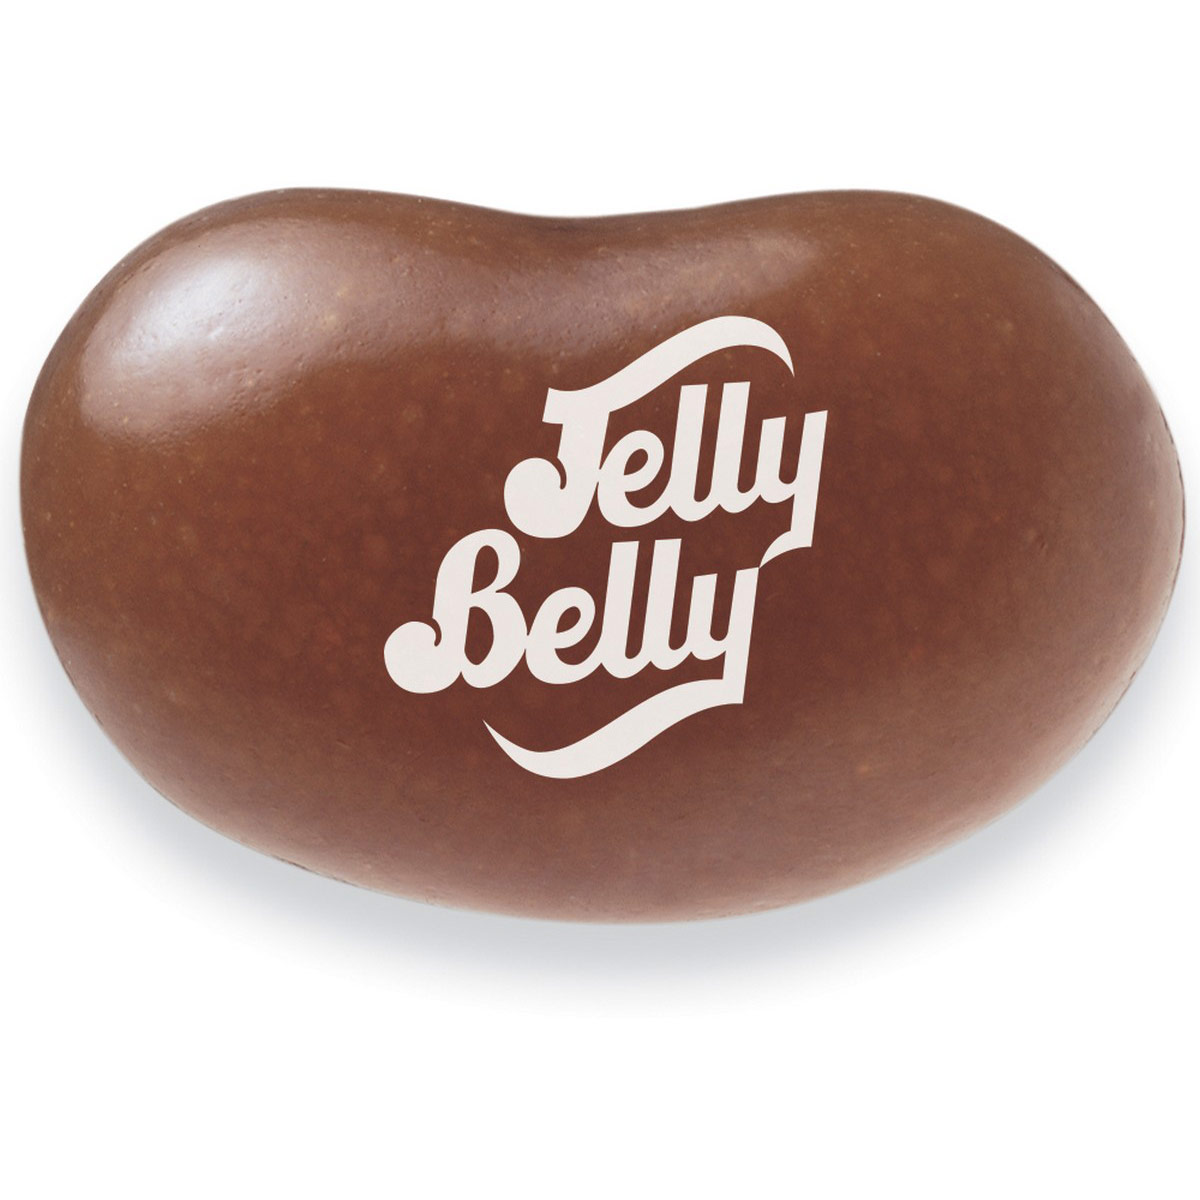 A&W Root Beer Jelly Belly Jelly Beans